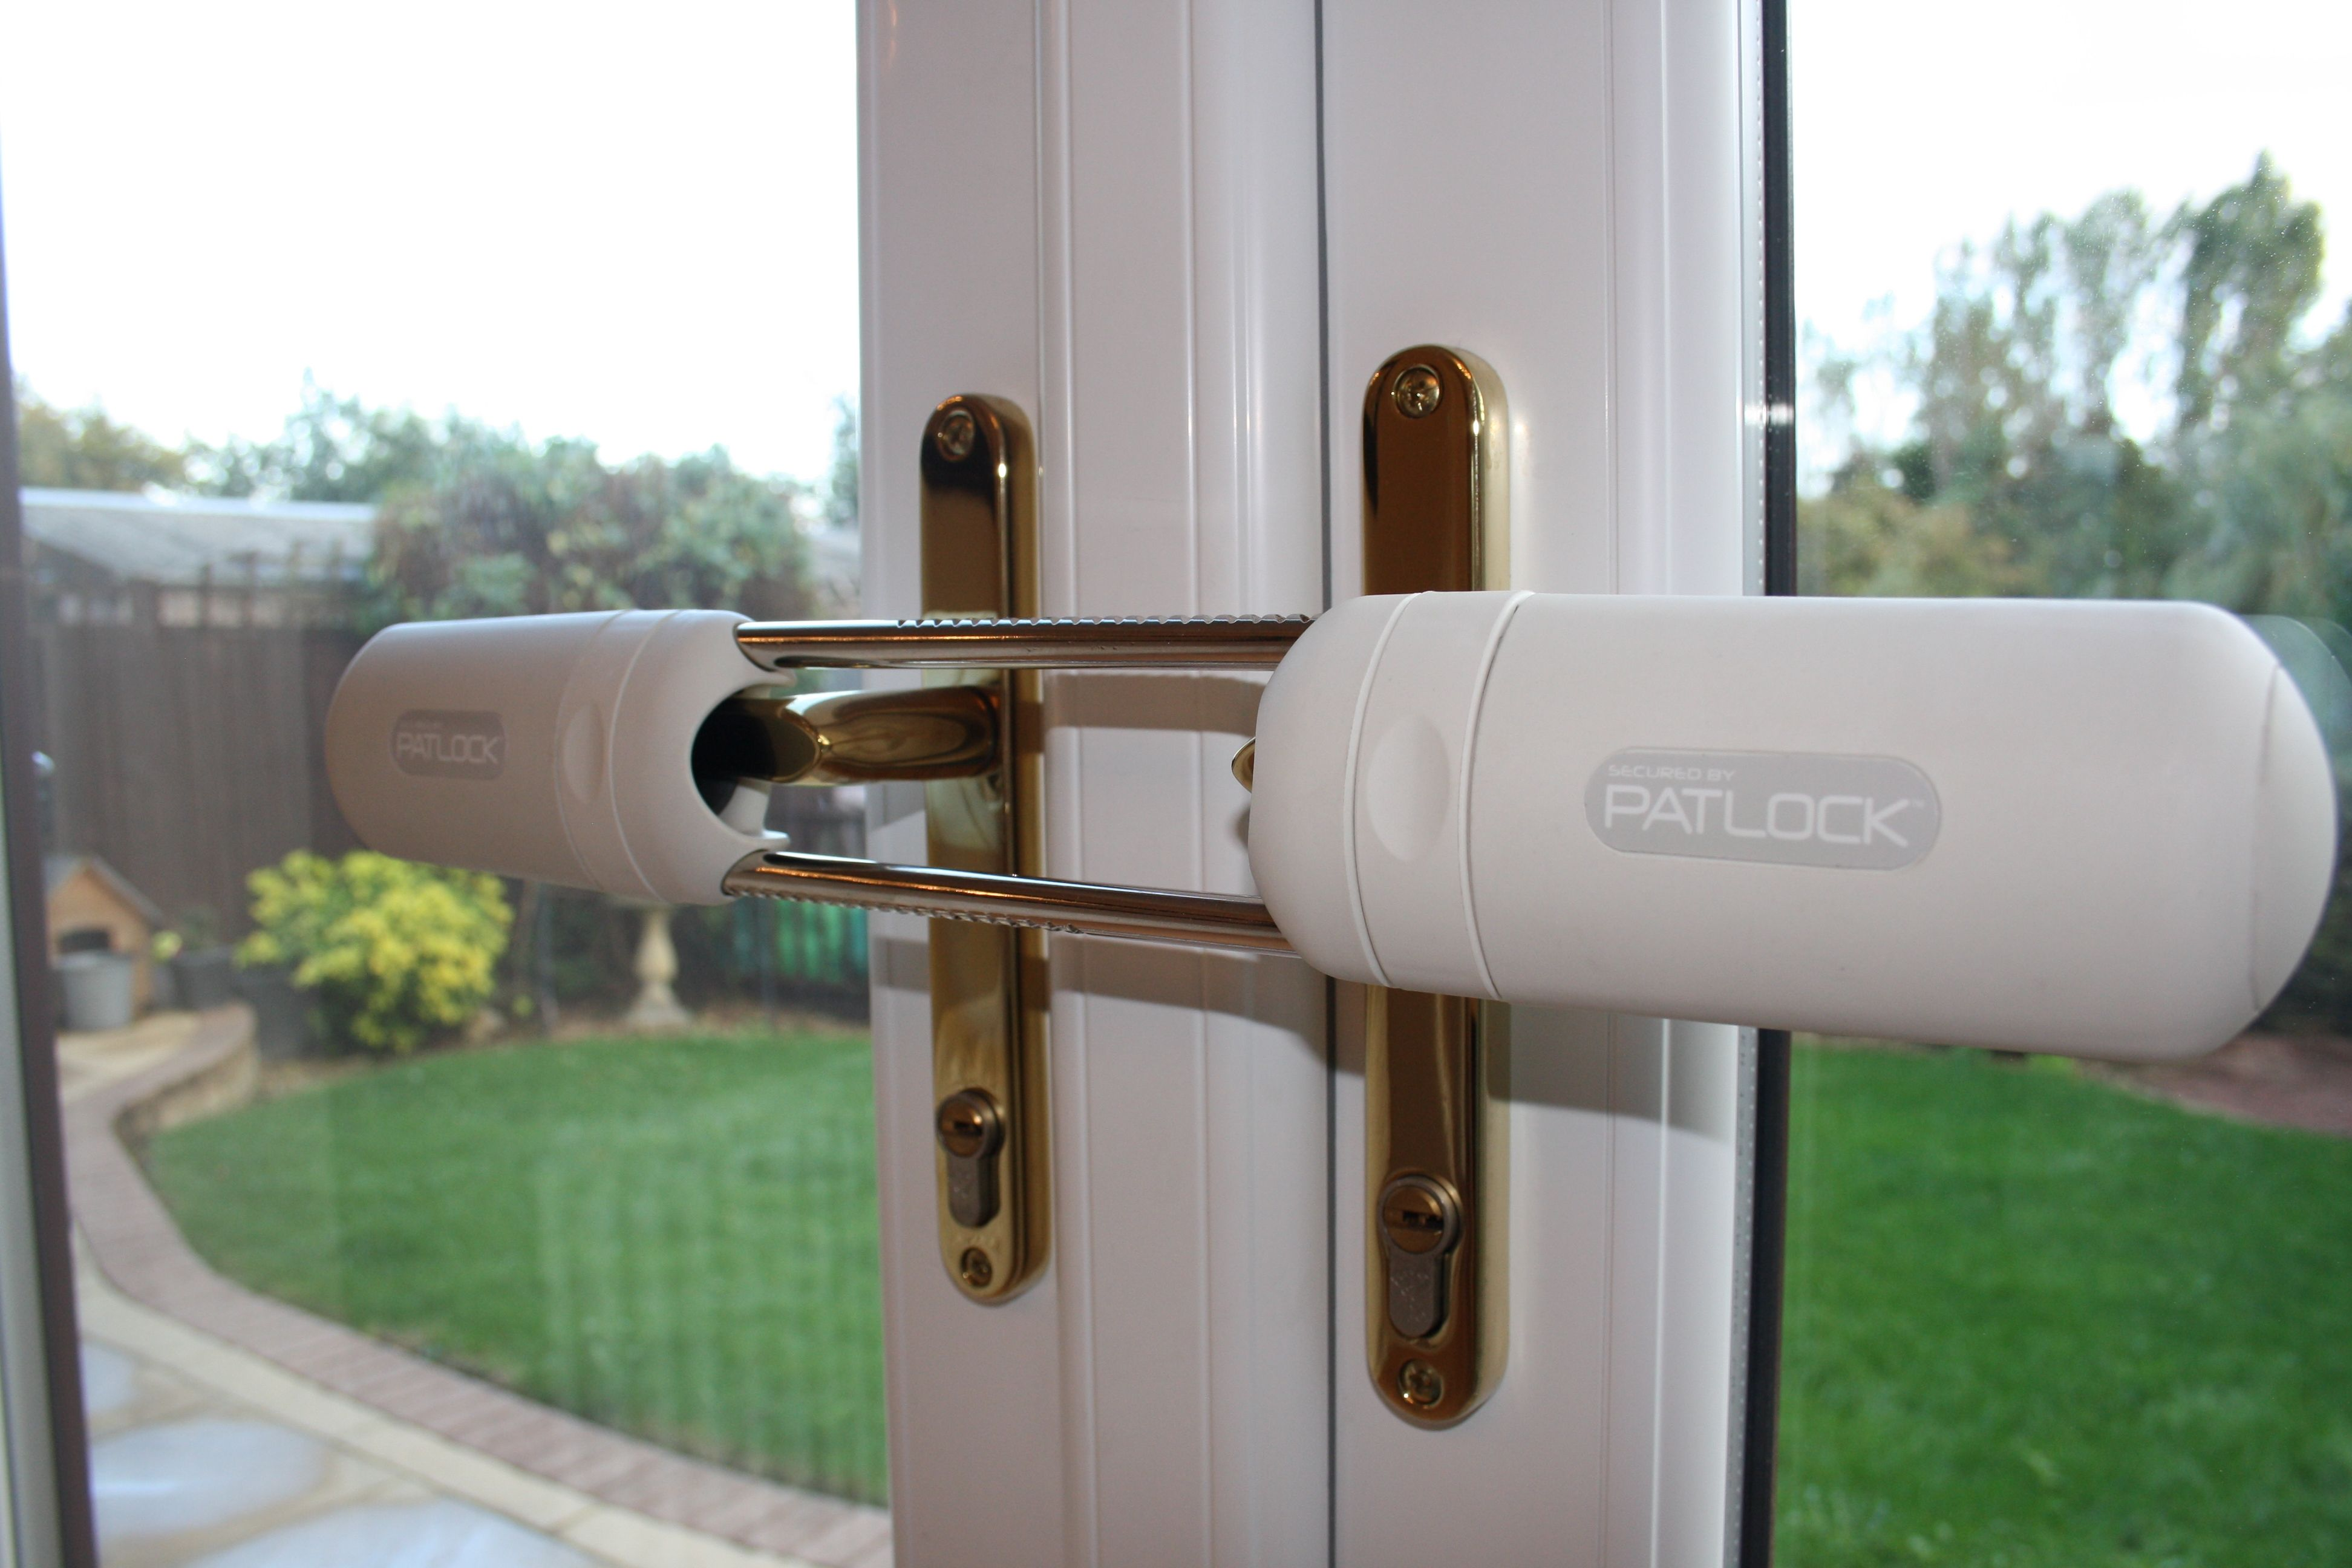 Extra Security Locks For Patio Doors There Was A Time When Houses